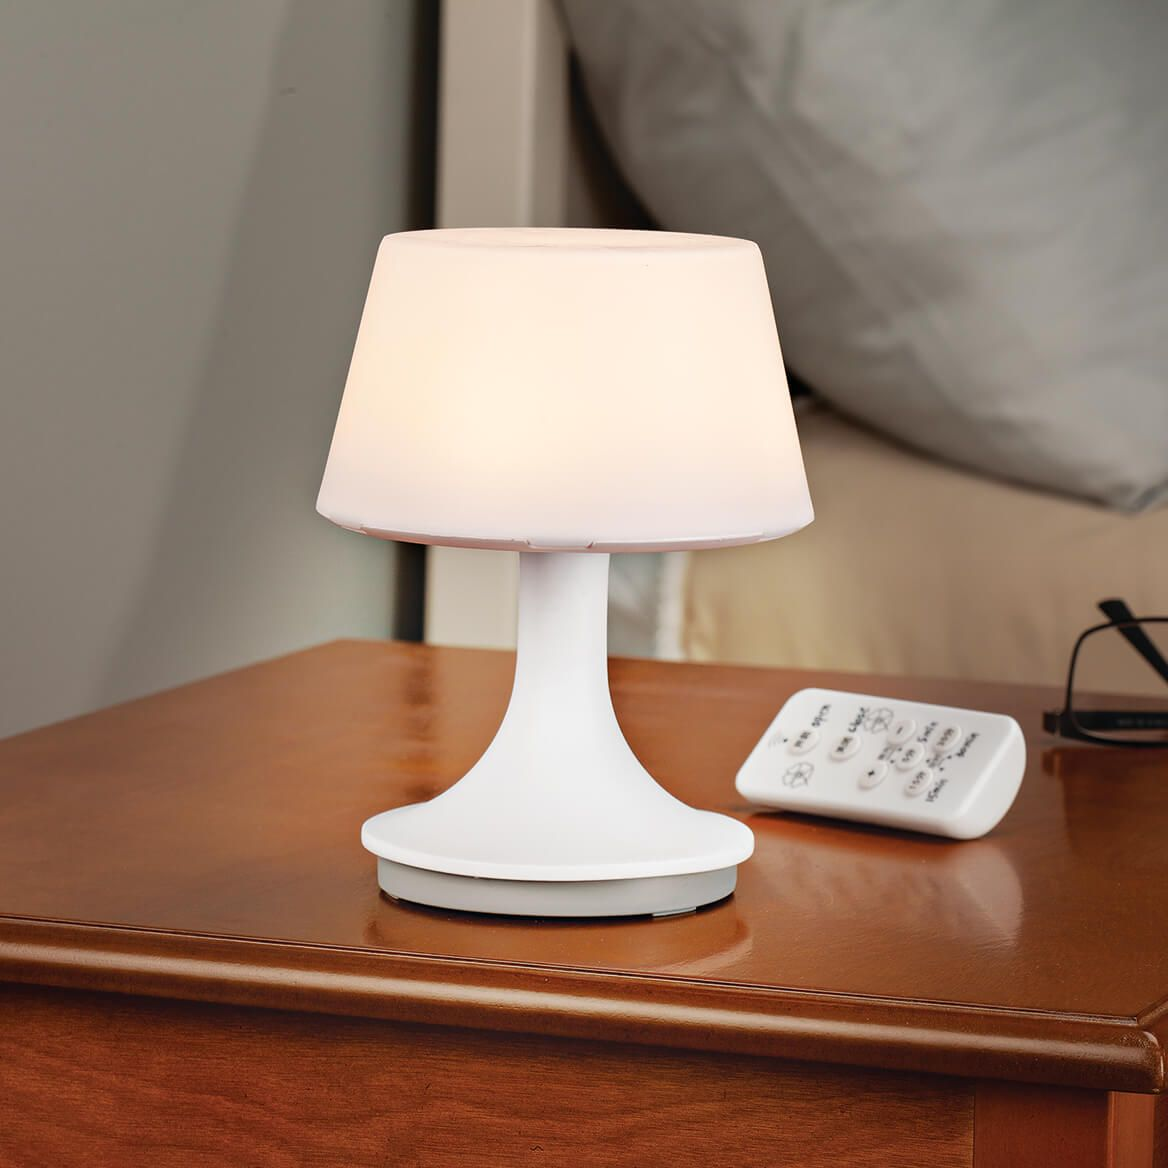 Table Night Light Lamp with Remote-371076